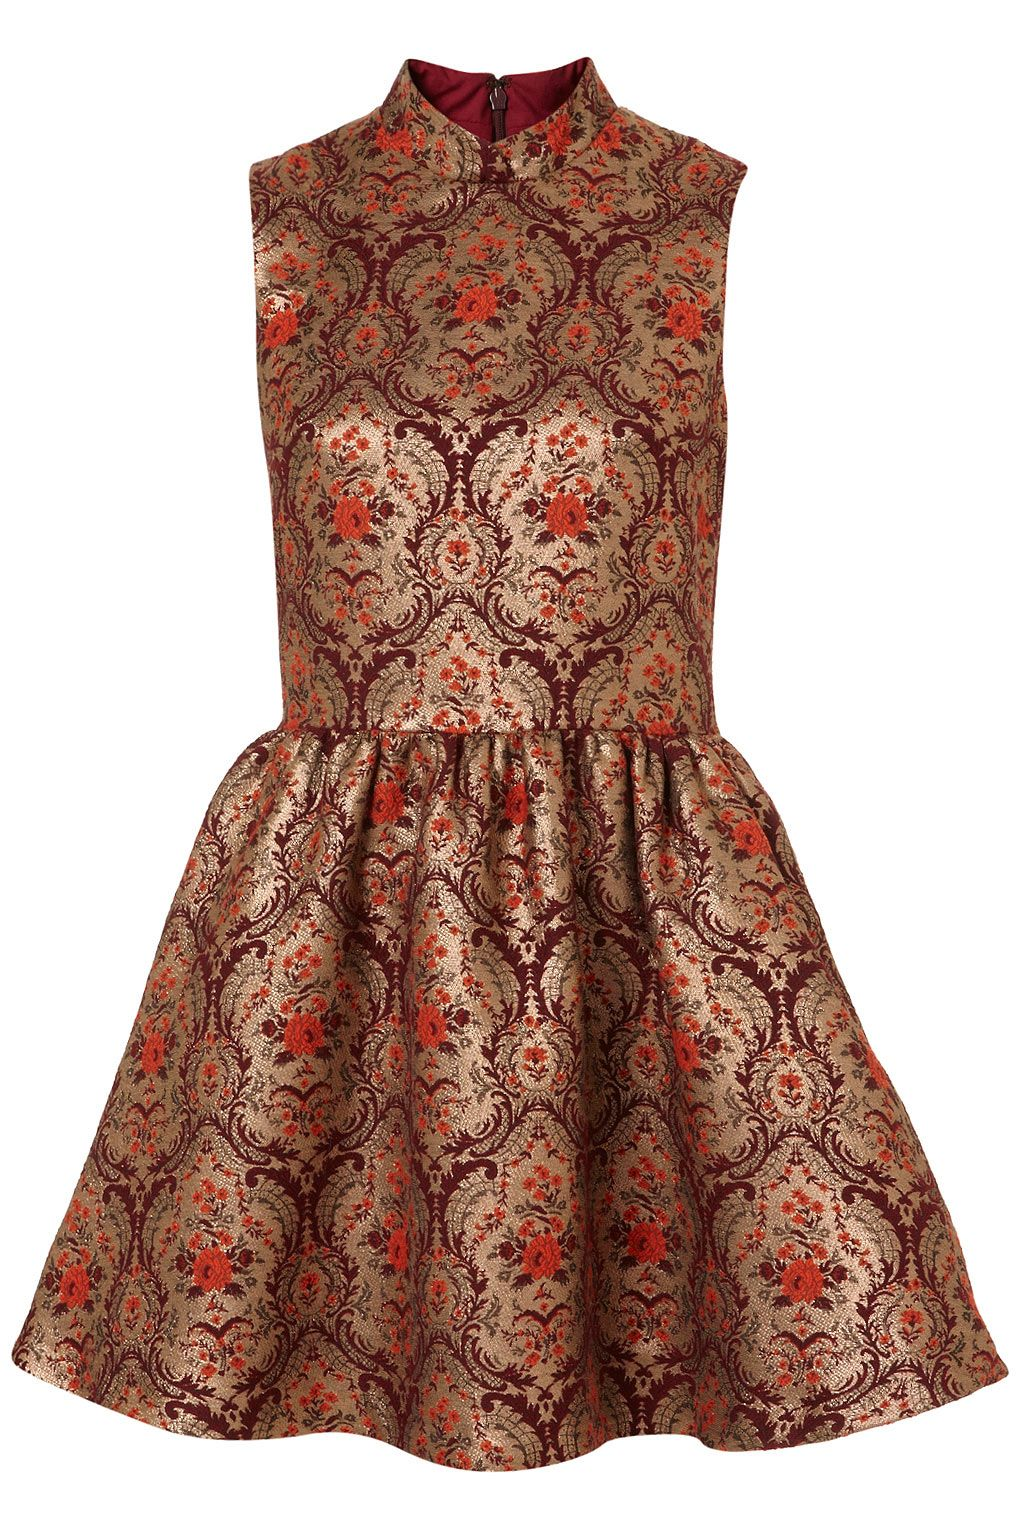 Topshop - Brocade Skater Dress: Perfection! The cut, fit, and the ...